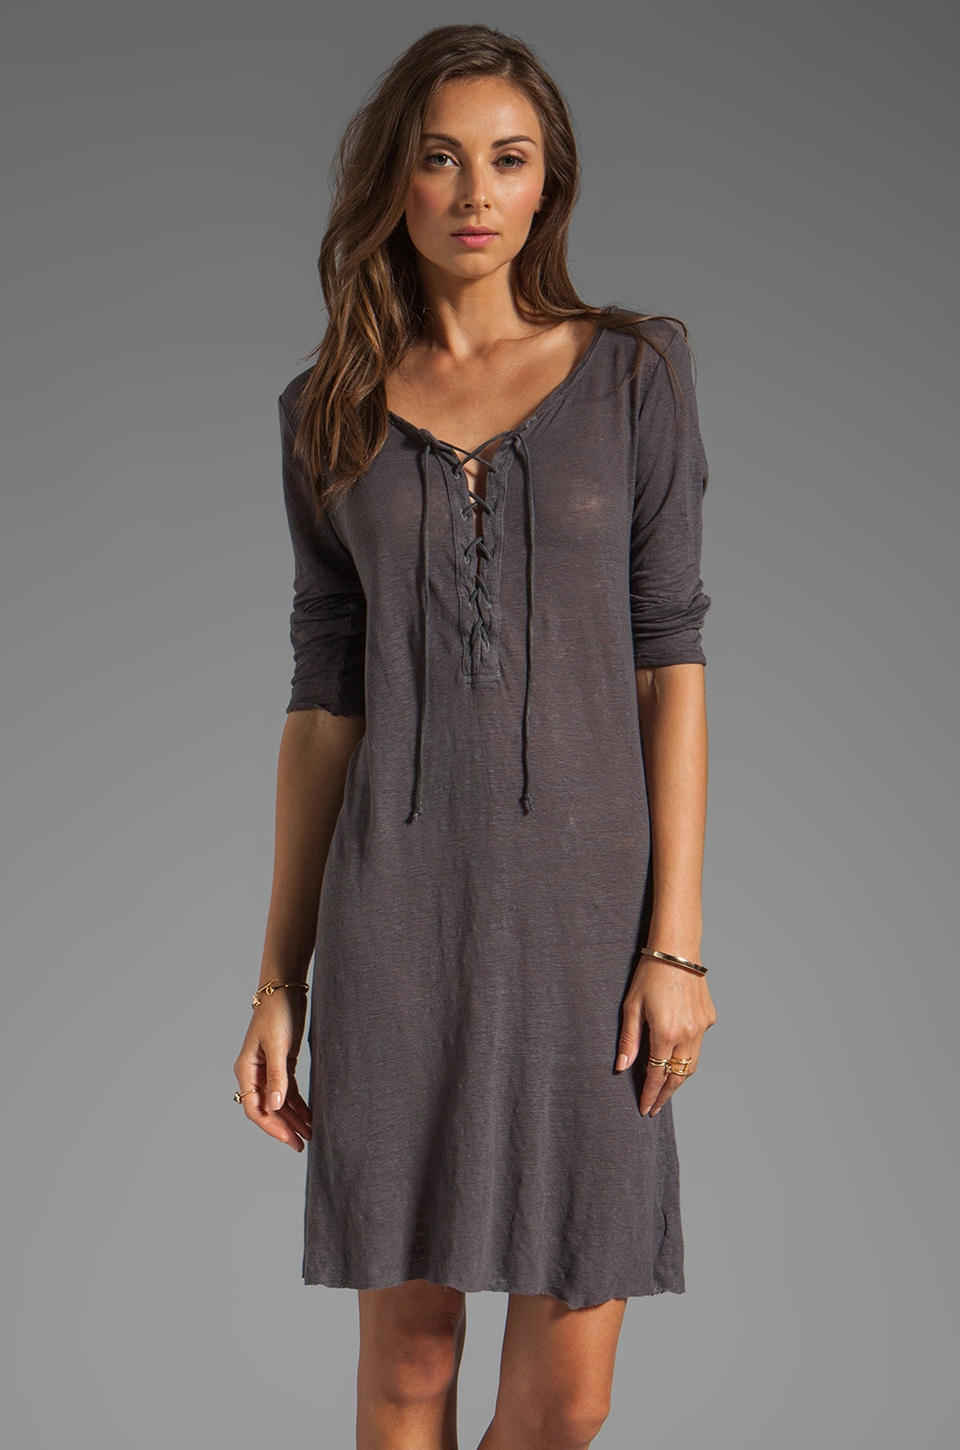 Graham & Spencer Linen Knit Dress in Cannon